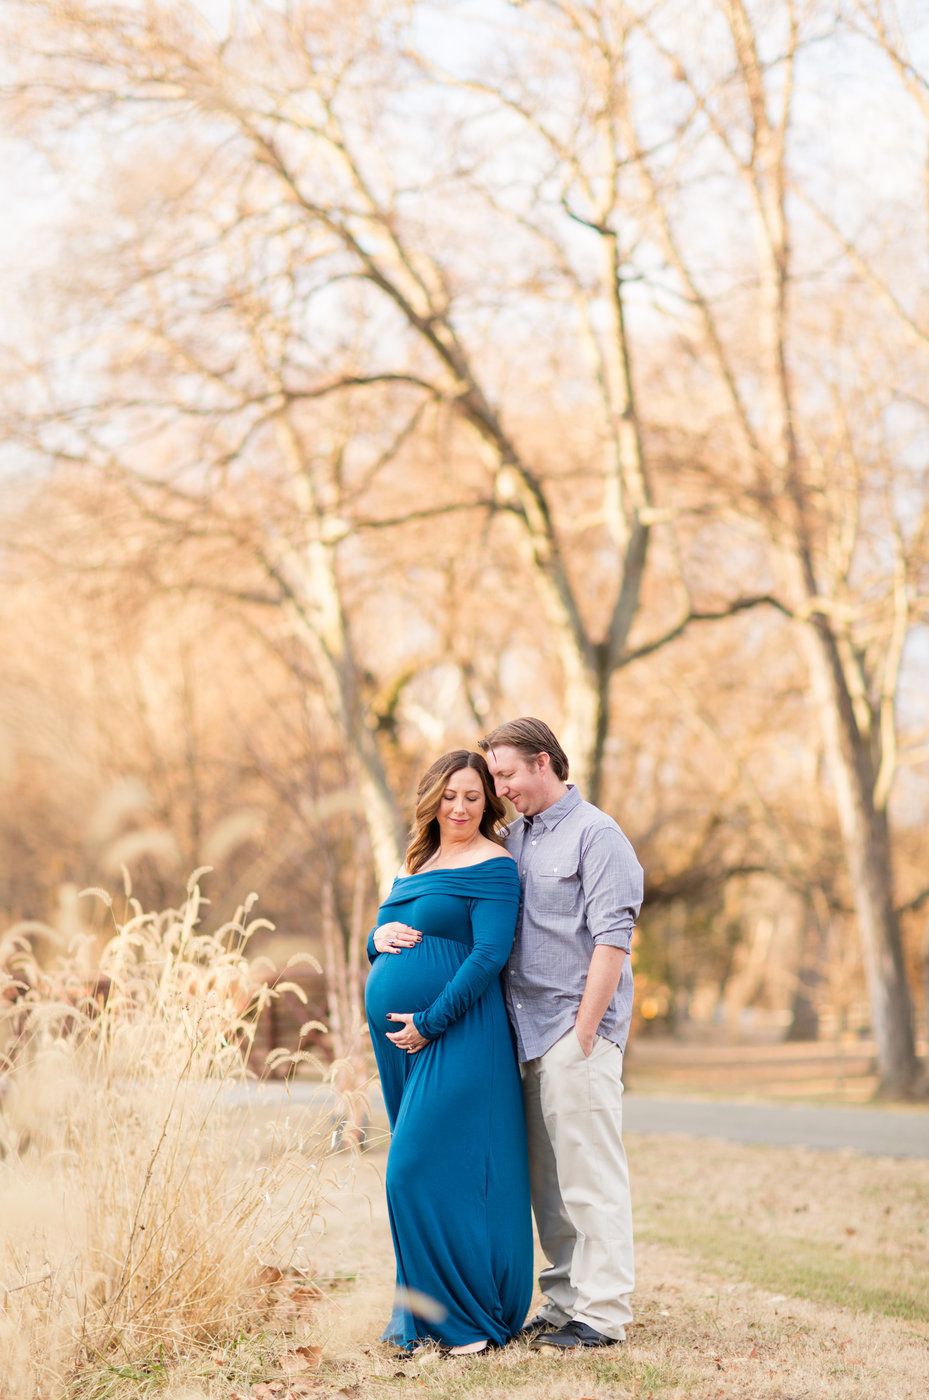 Virginia Maternity photography by Stafford, Virginia Senior portraits by Marie Hamilton Photography